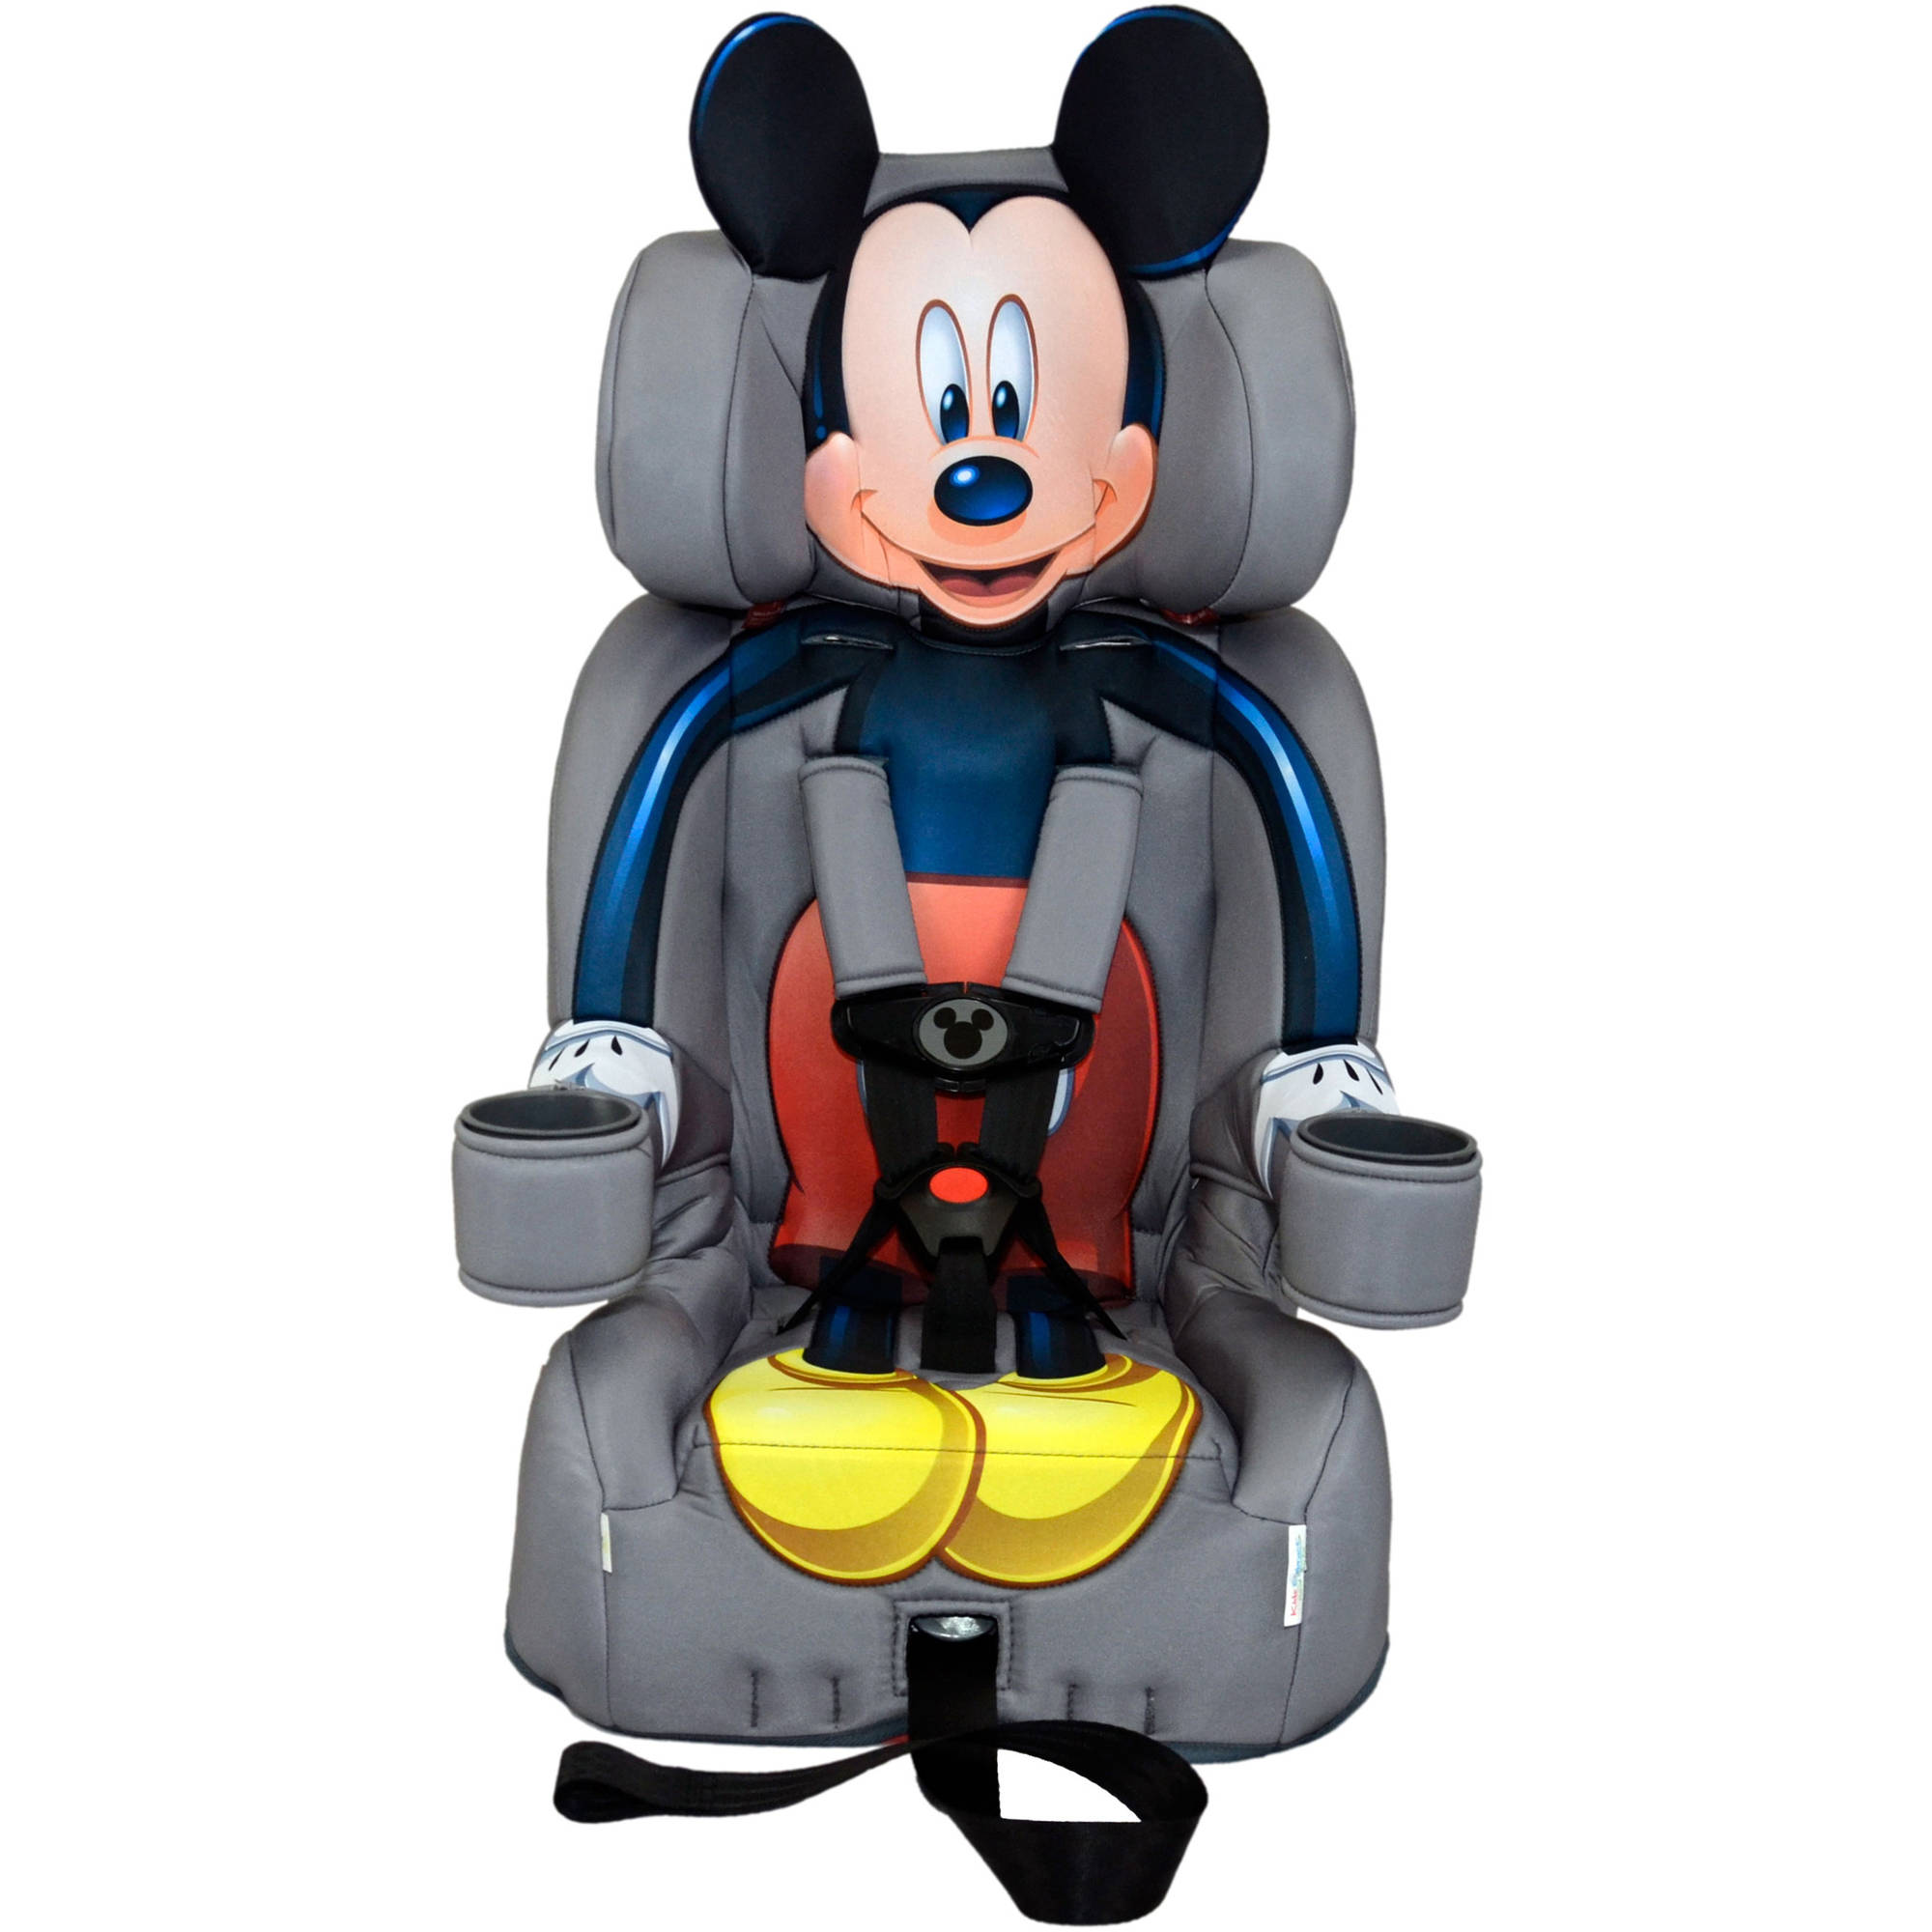 KidsEmbrace Friendship Combination Booster Car Seat, Mickey Mouse